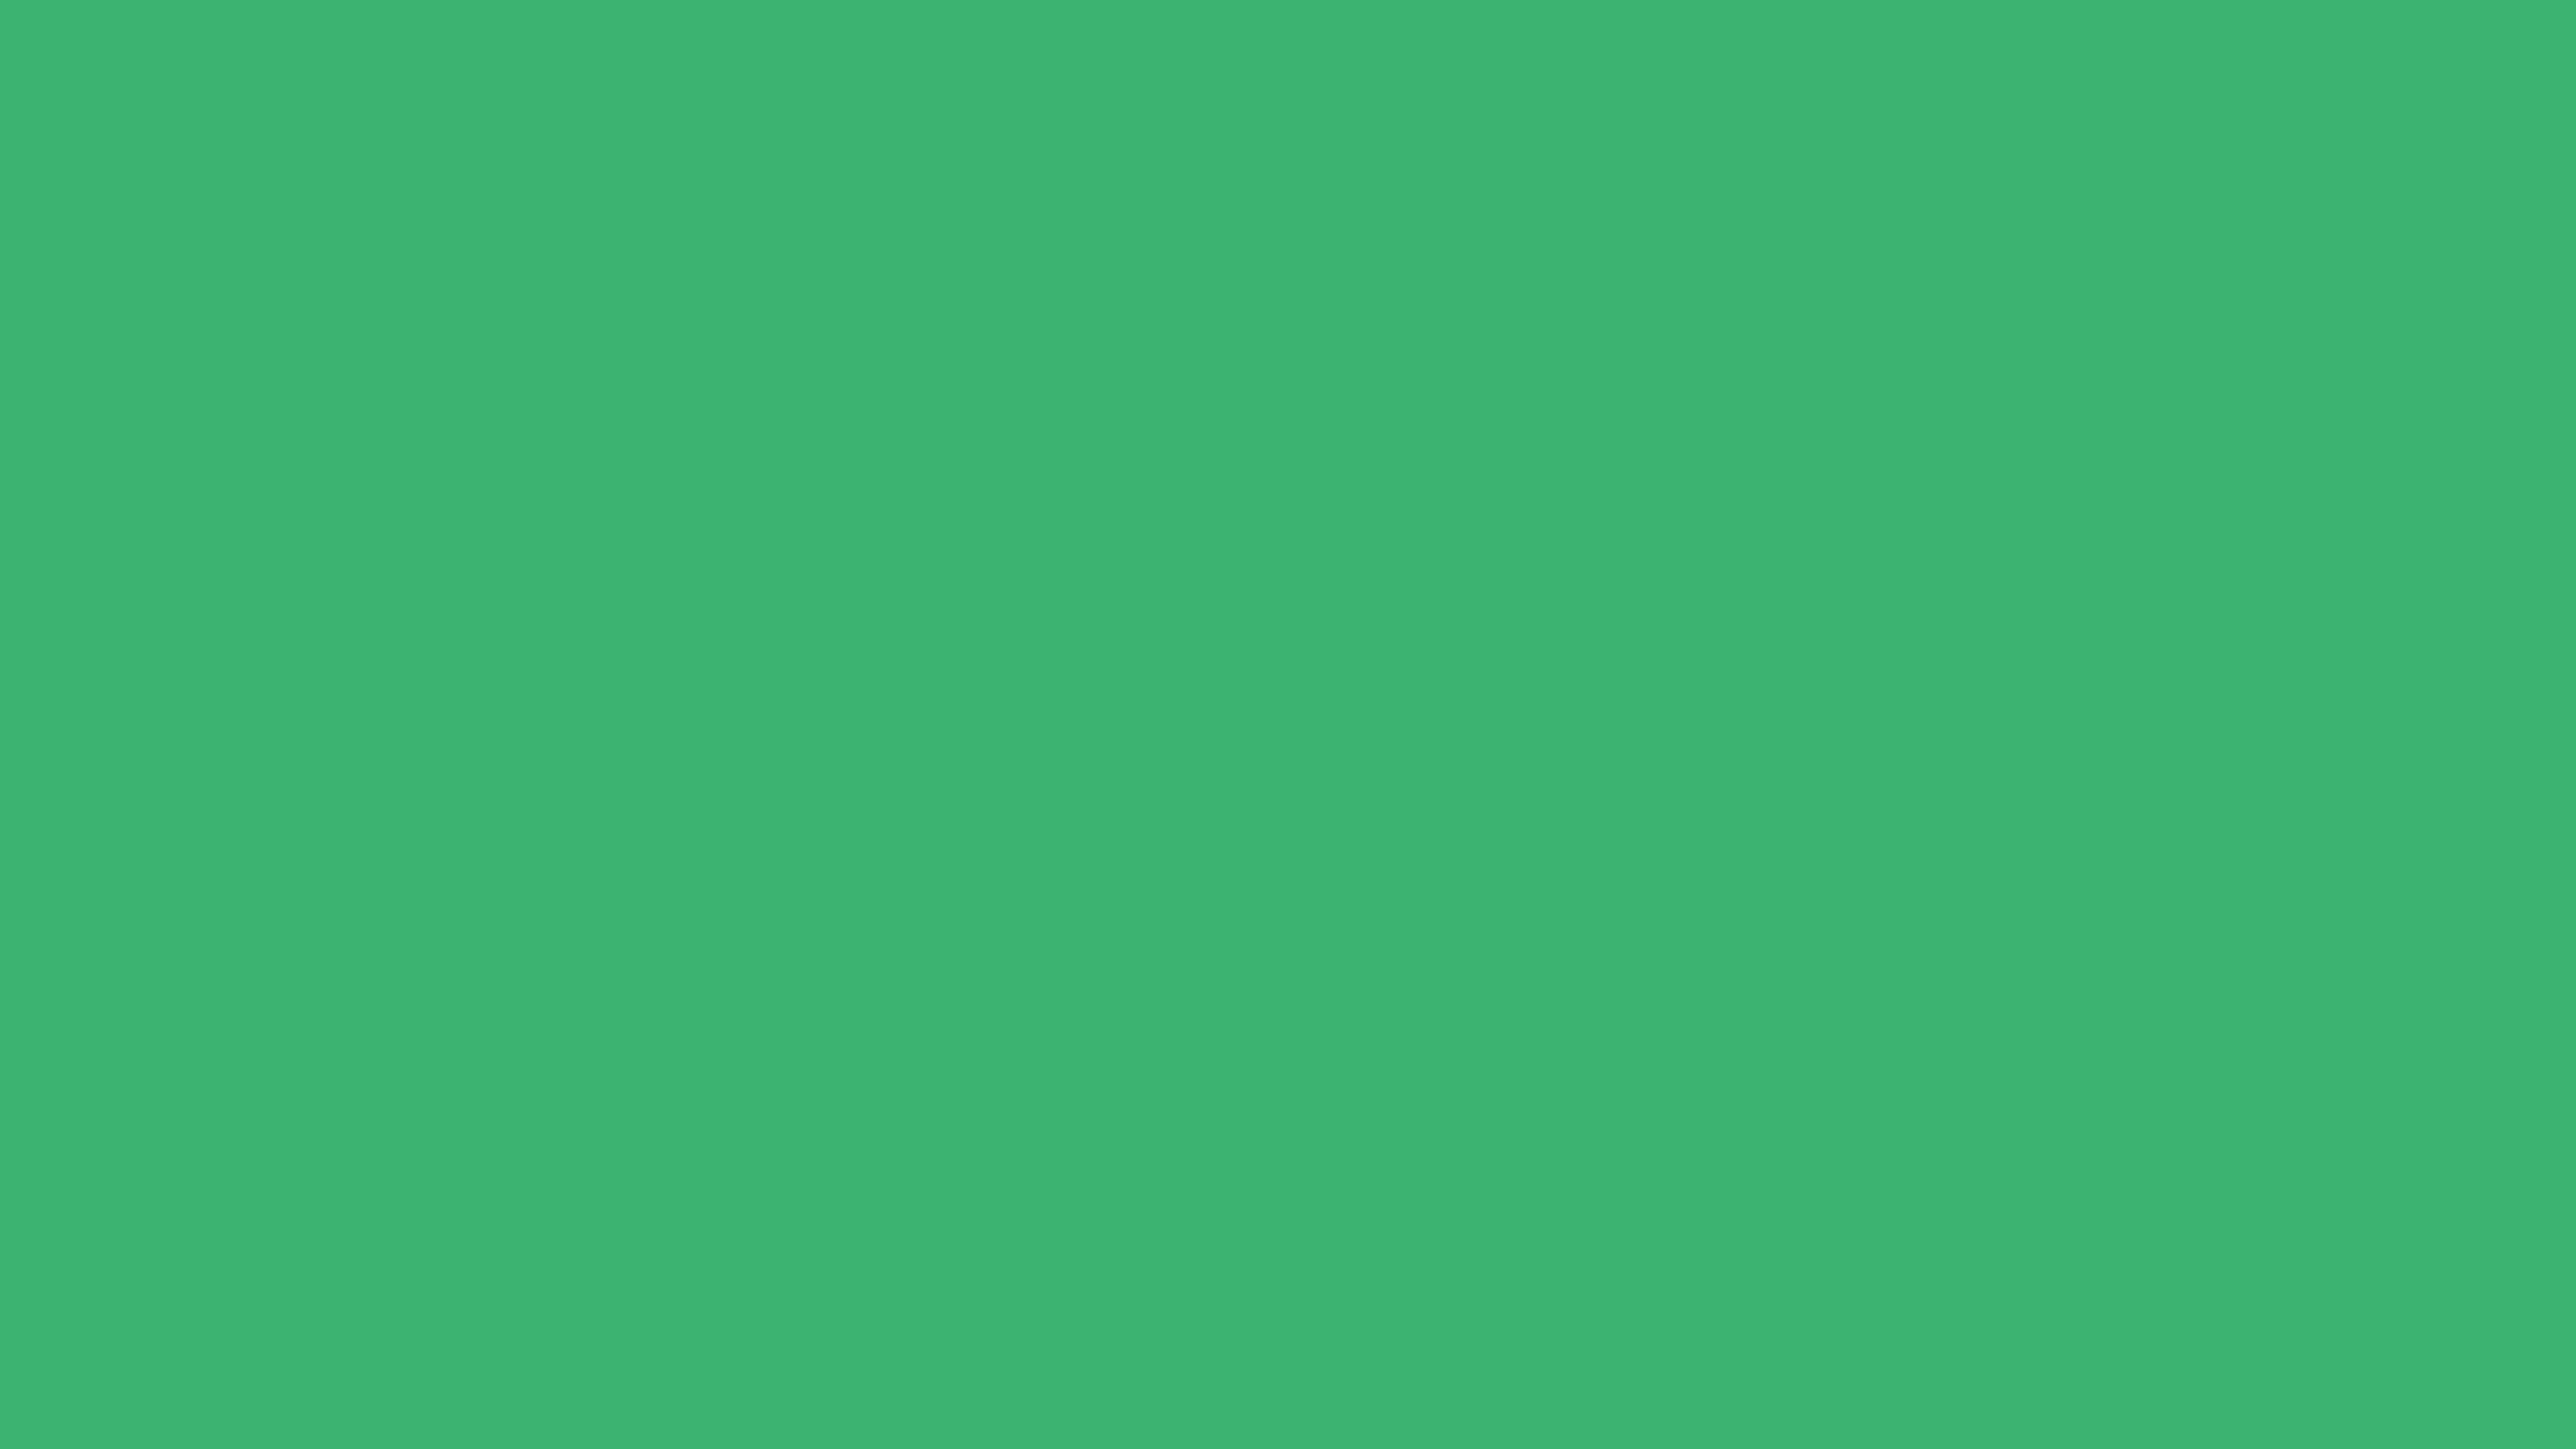 4096x2304 Medium Sea Green Solid Color Background